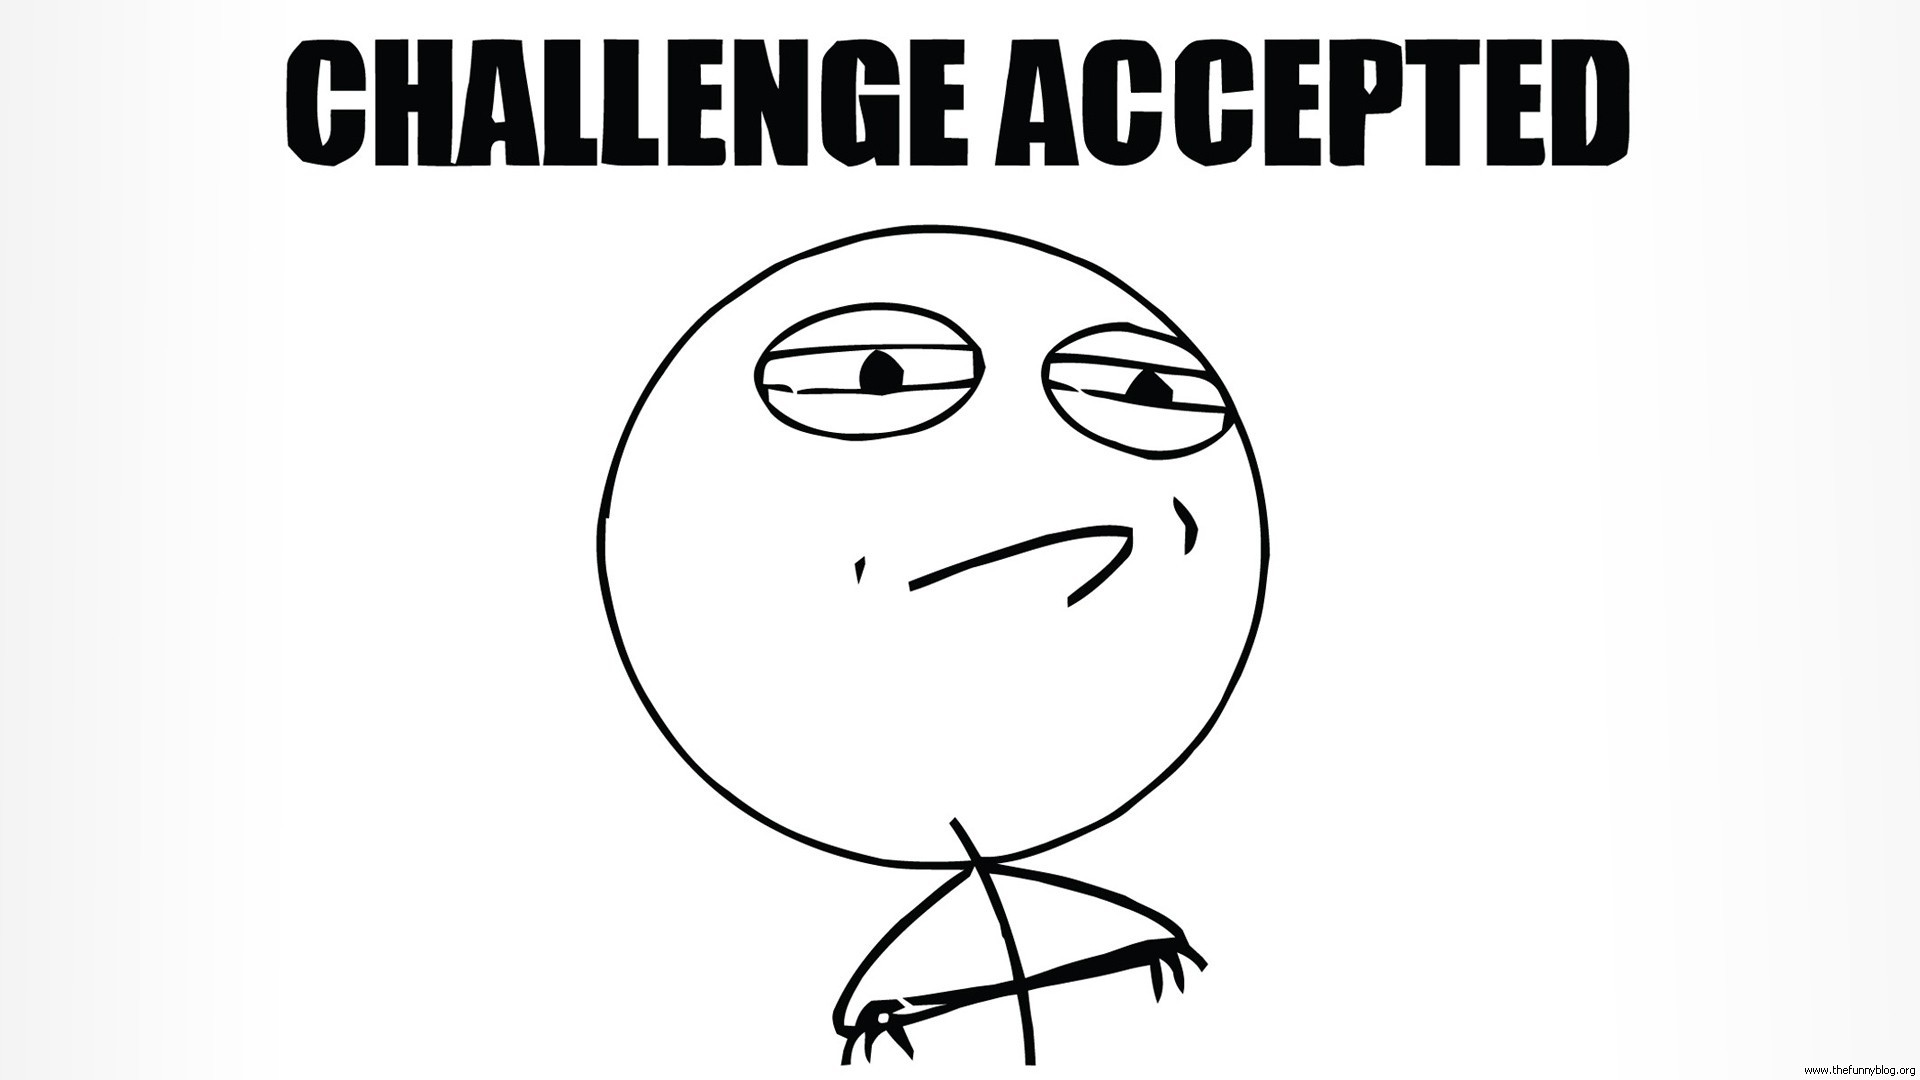 Memes-Challenge-Accepted-Hd-Wallpapers.jpg